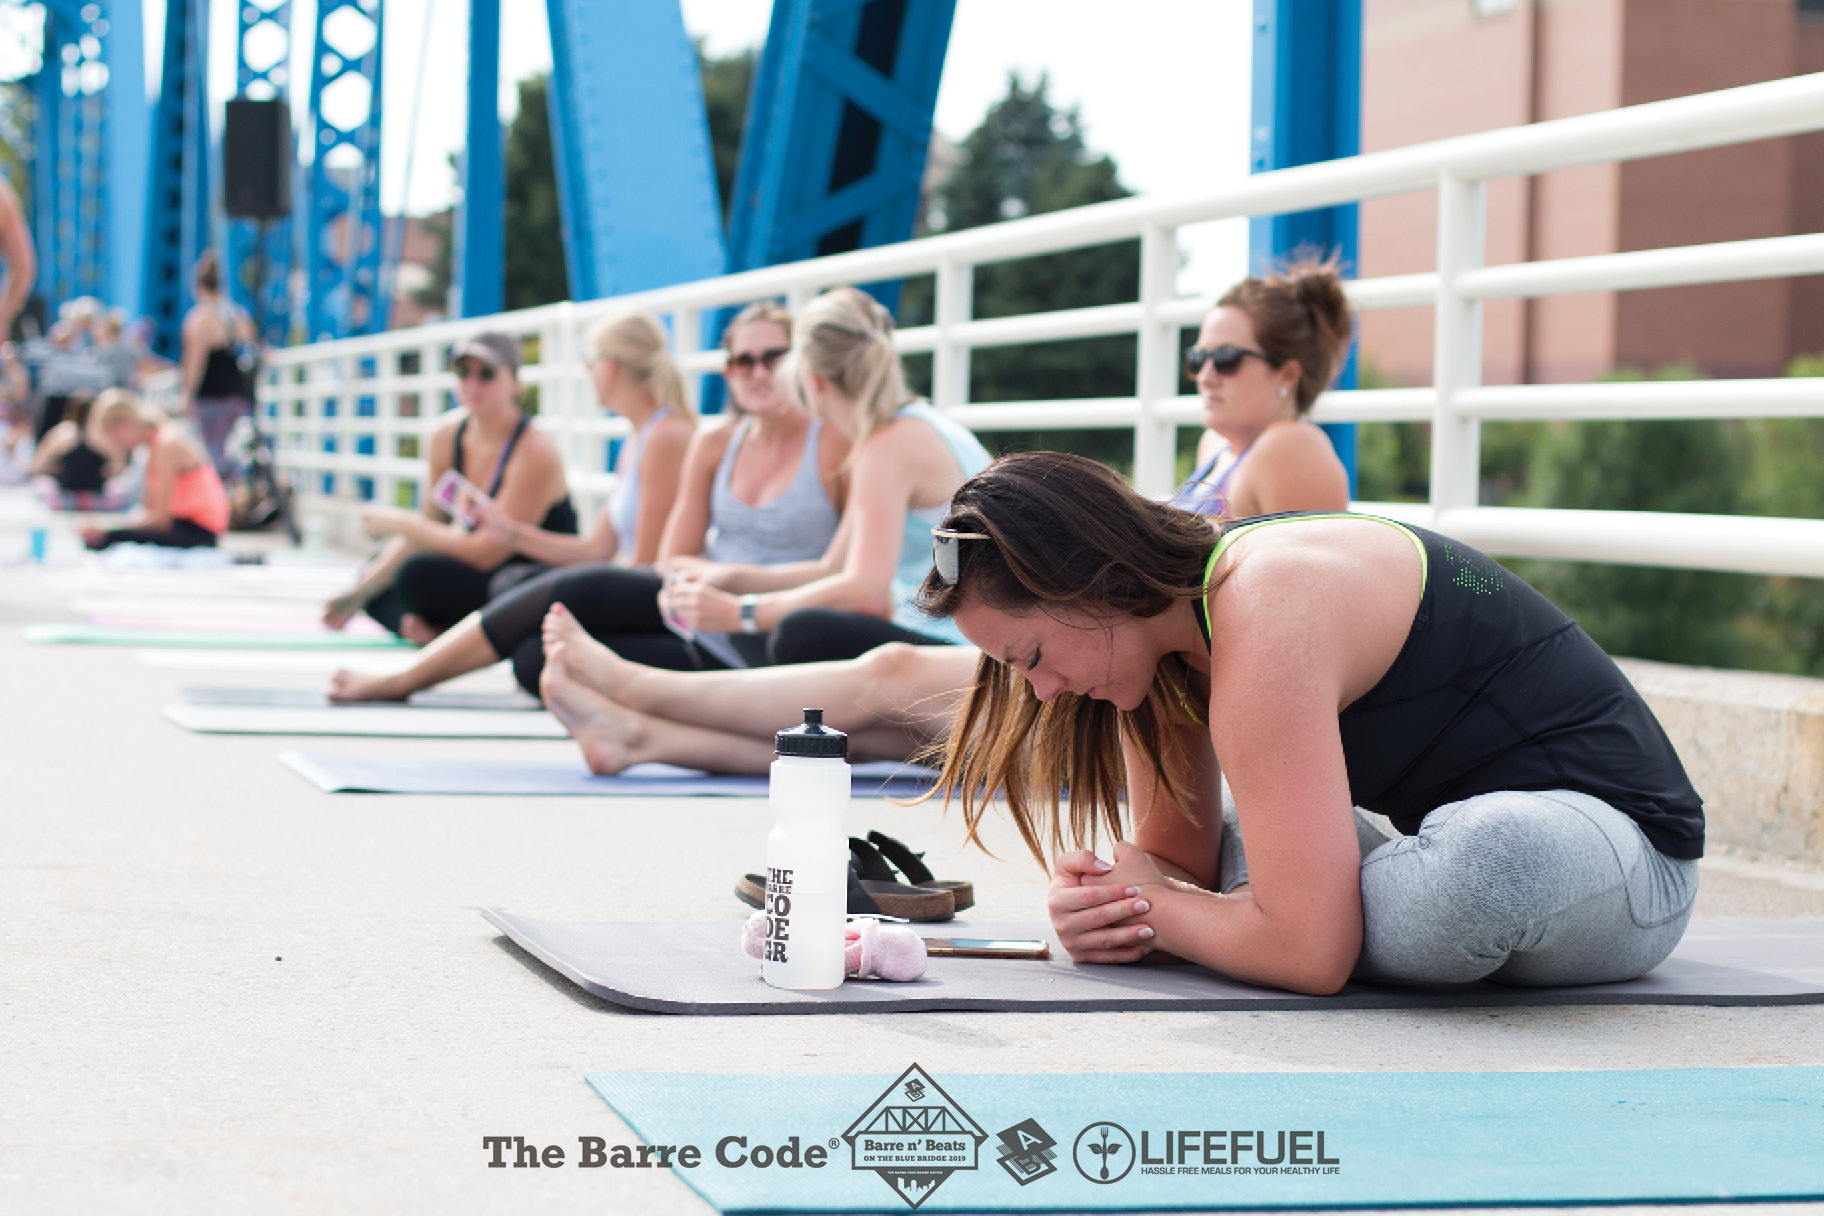 190805_the_barre_code_lifefuel_5.jpg